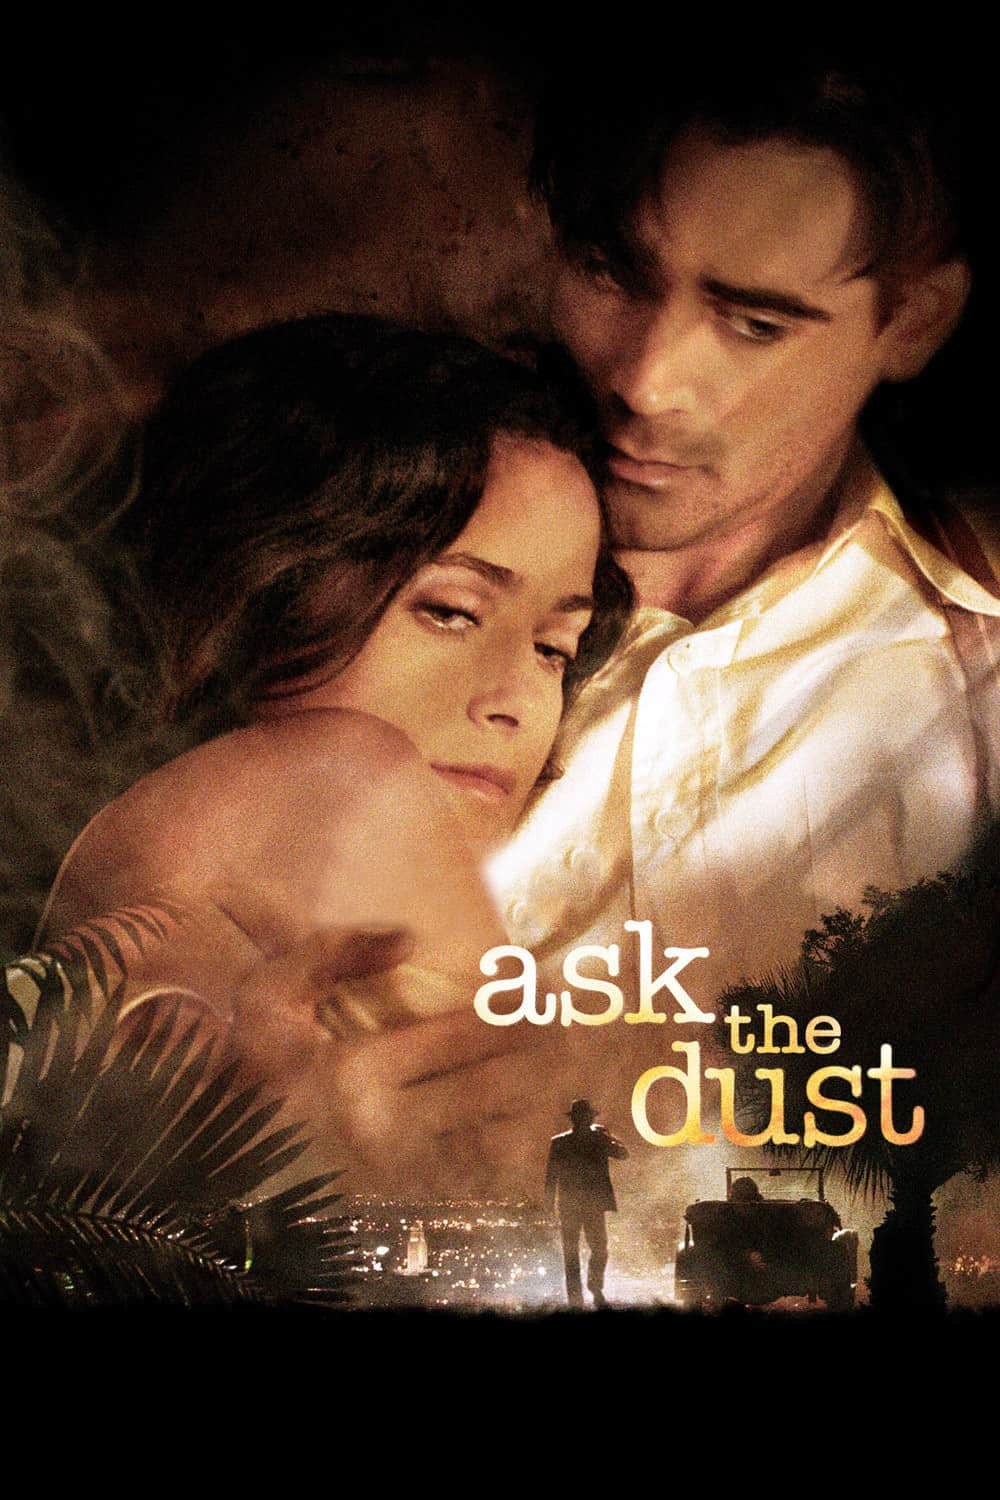 Ask the Dust, 2006